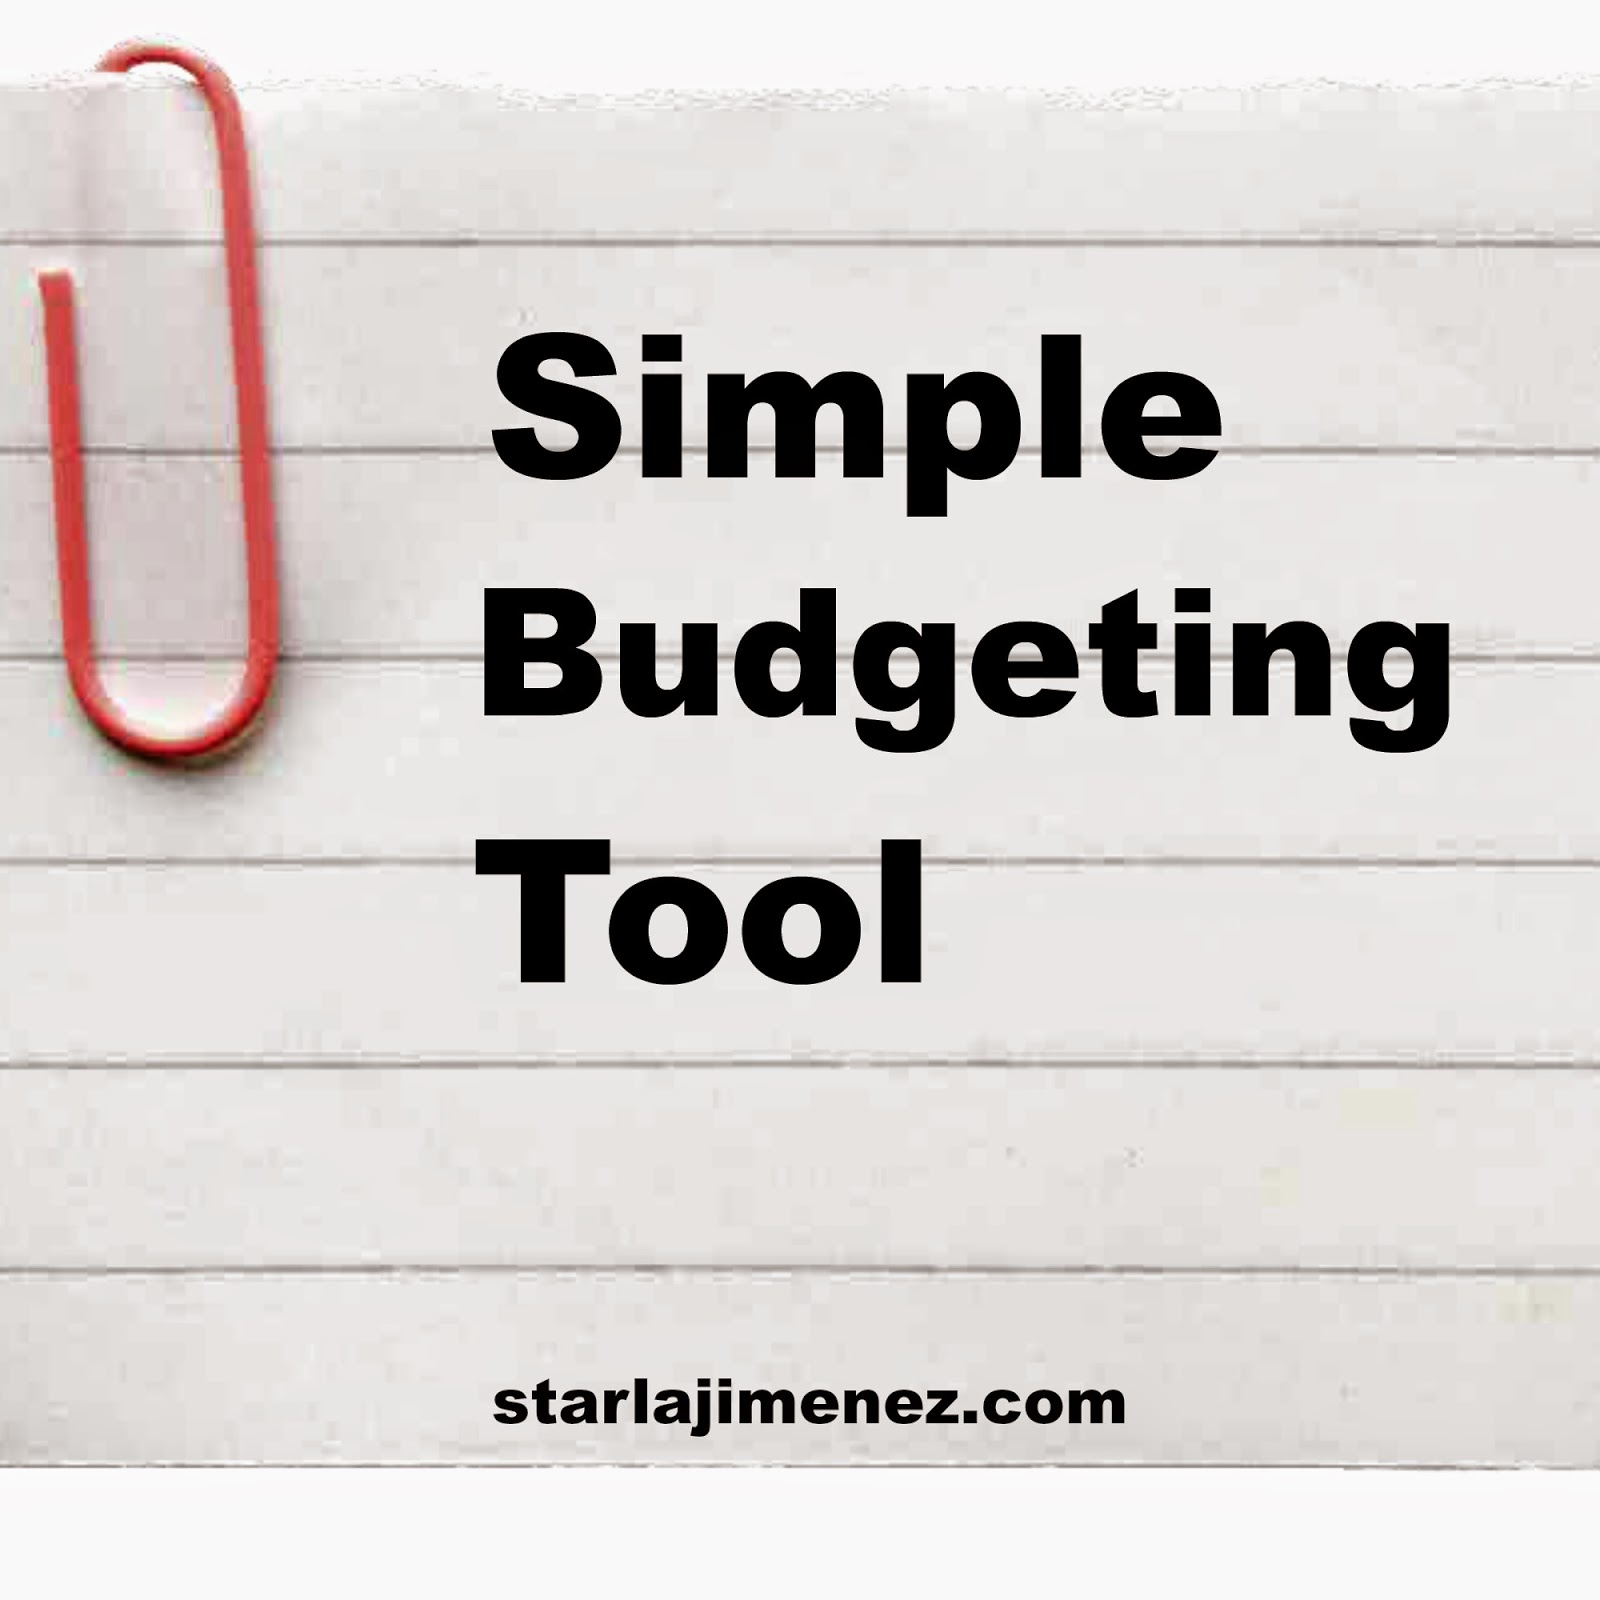 simple budgeting tool